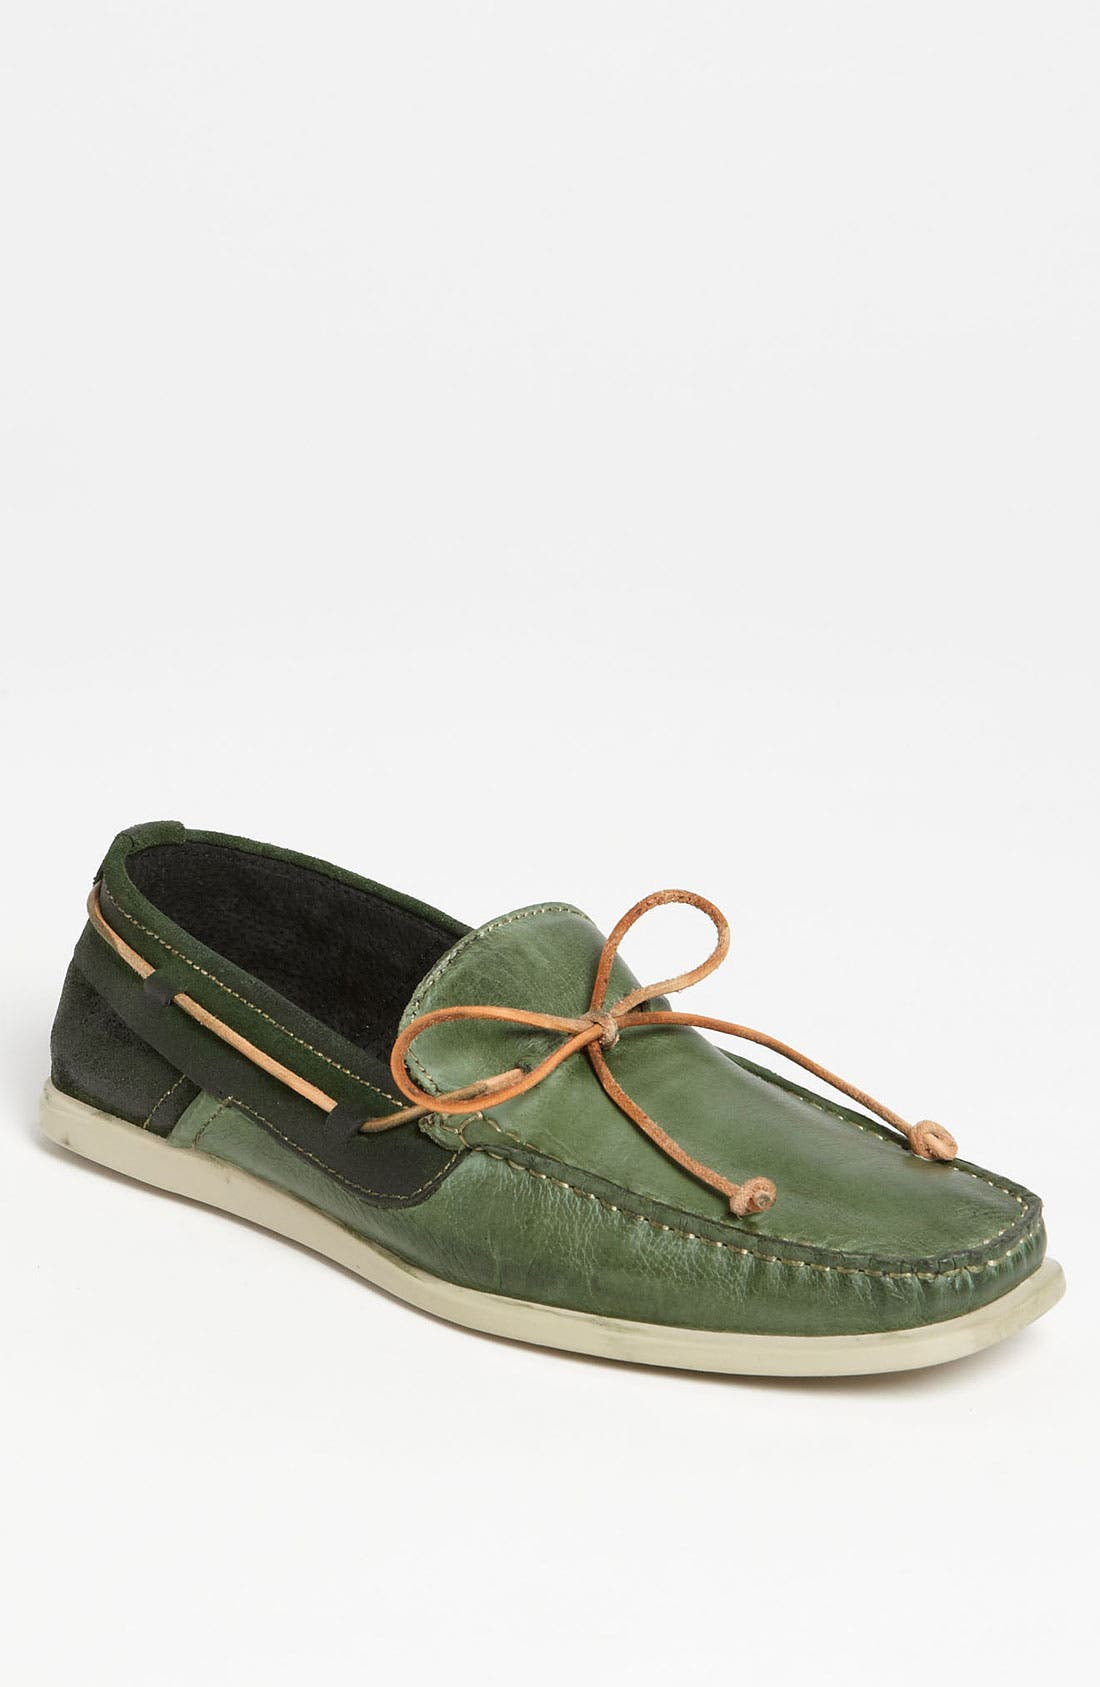 Main Image - Kenneth Cole New York 'Sail' Boat Shoe